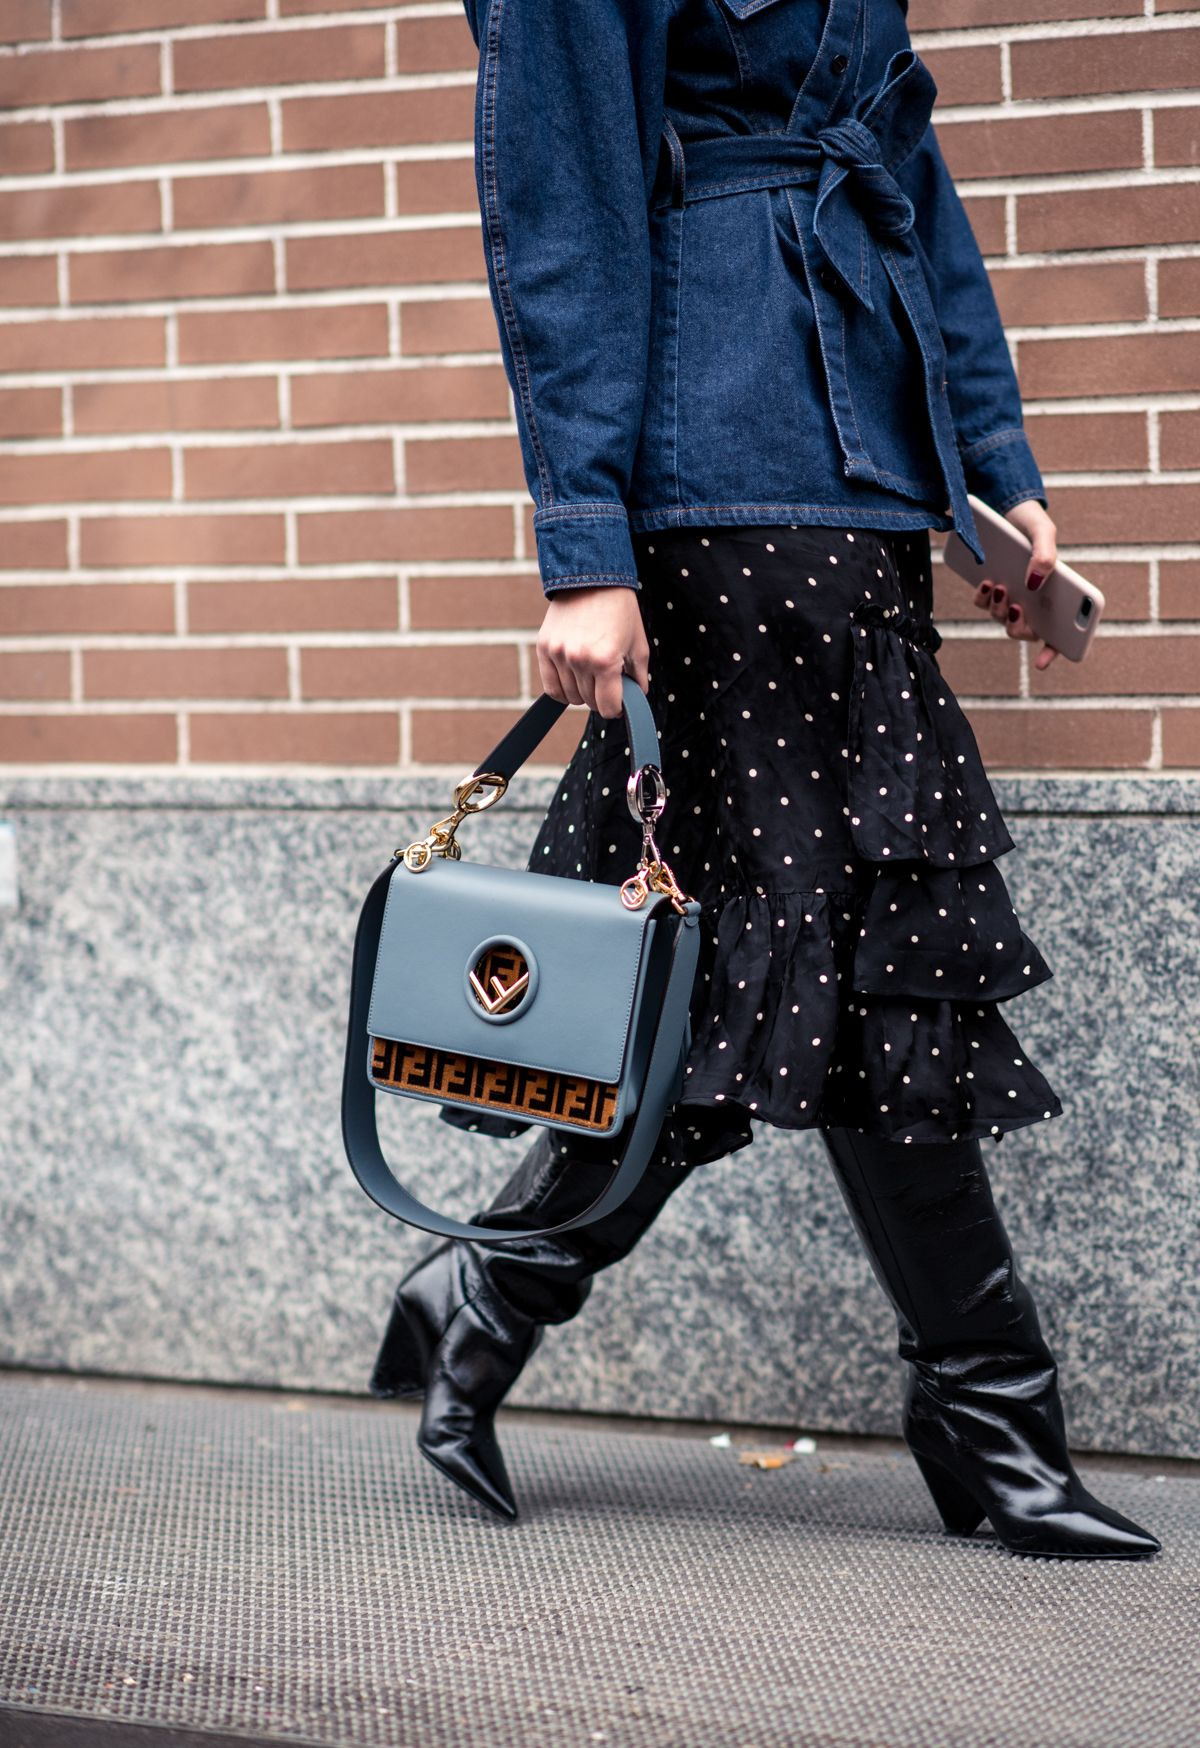 e0e98b3dc5 Spotted at  MFW – the Fendi Kan I logo-print handbag. The FF logo motif and  elegant blue-grey shade score serious  style points.